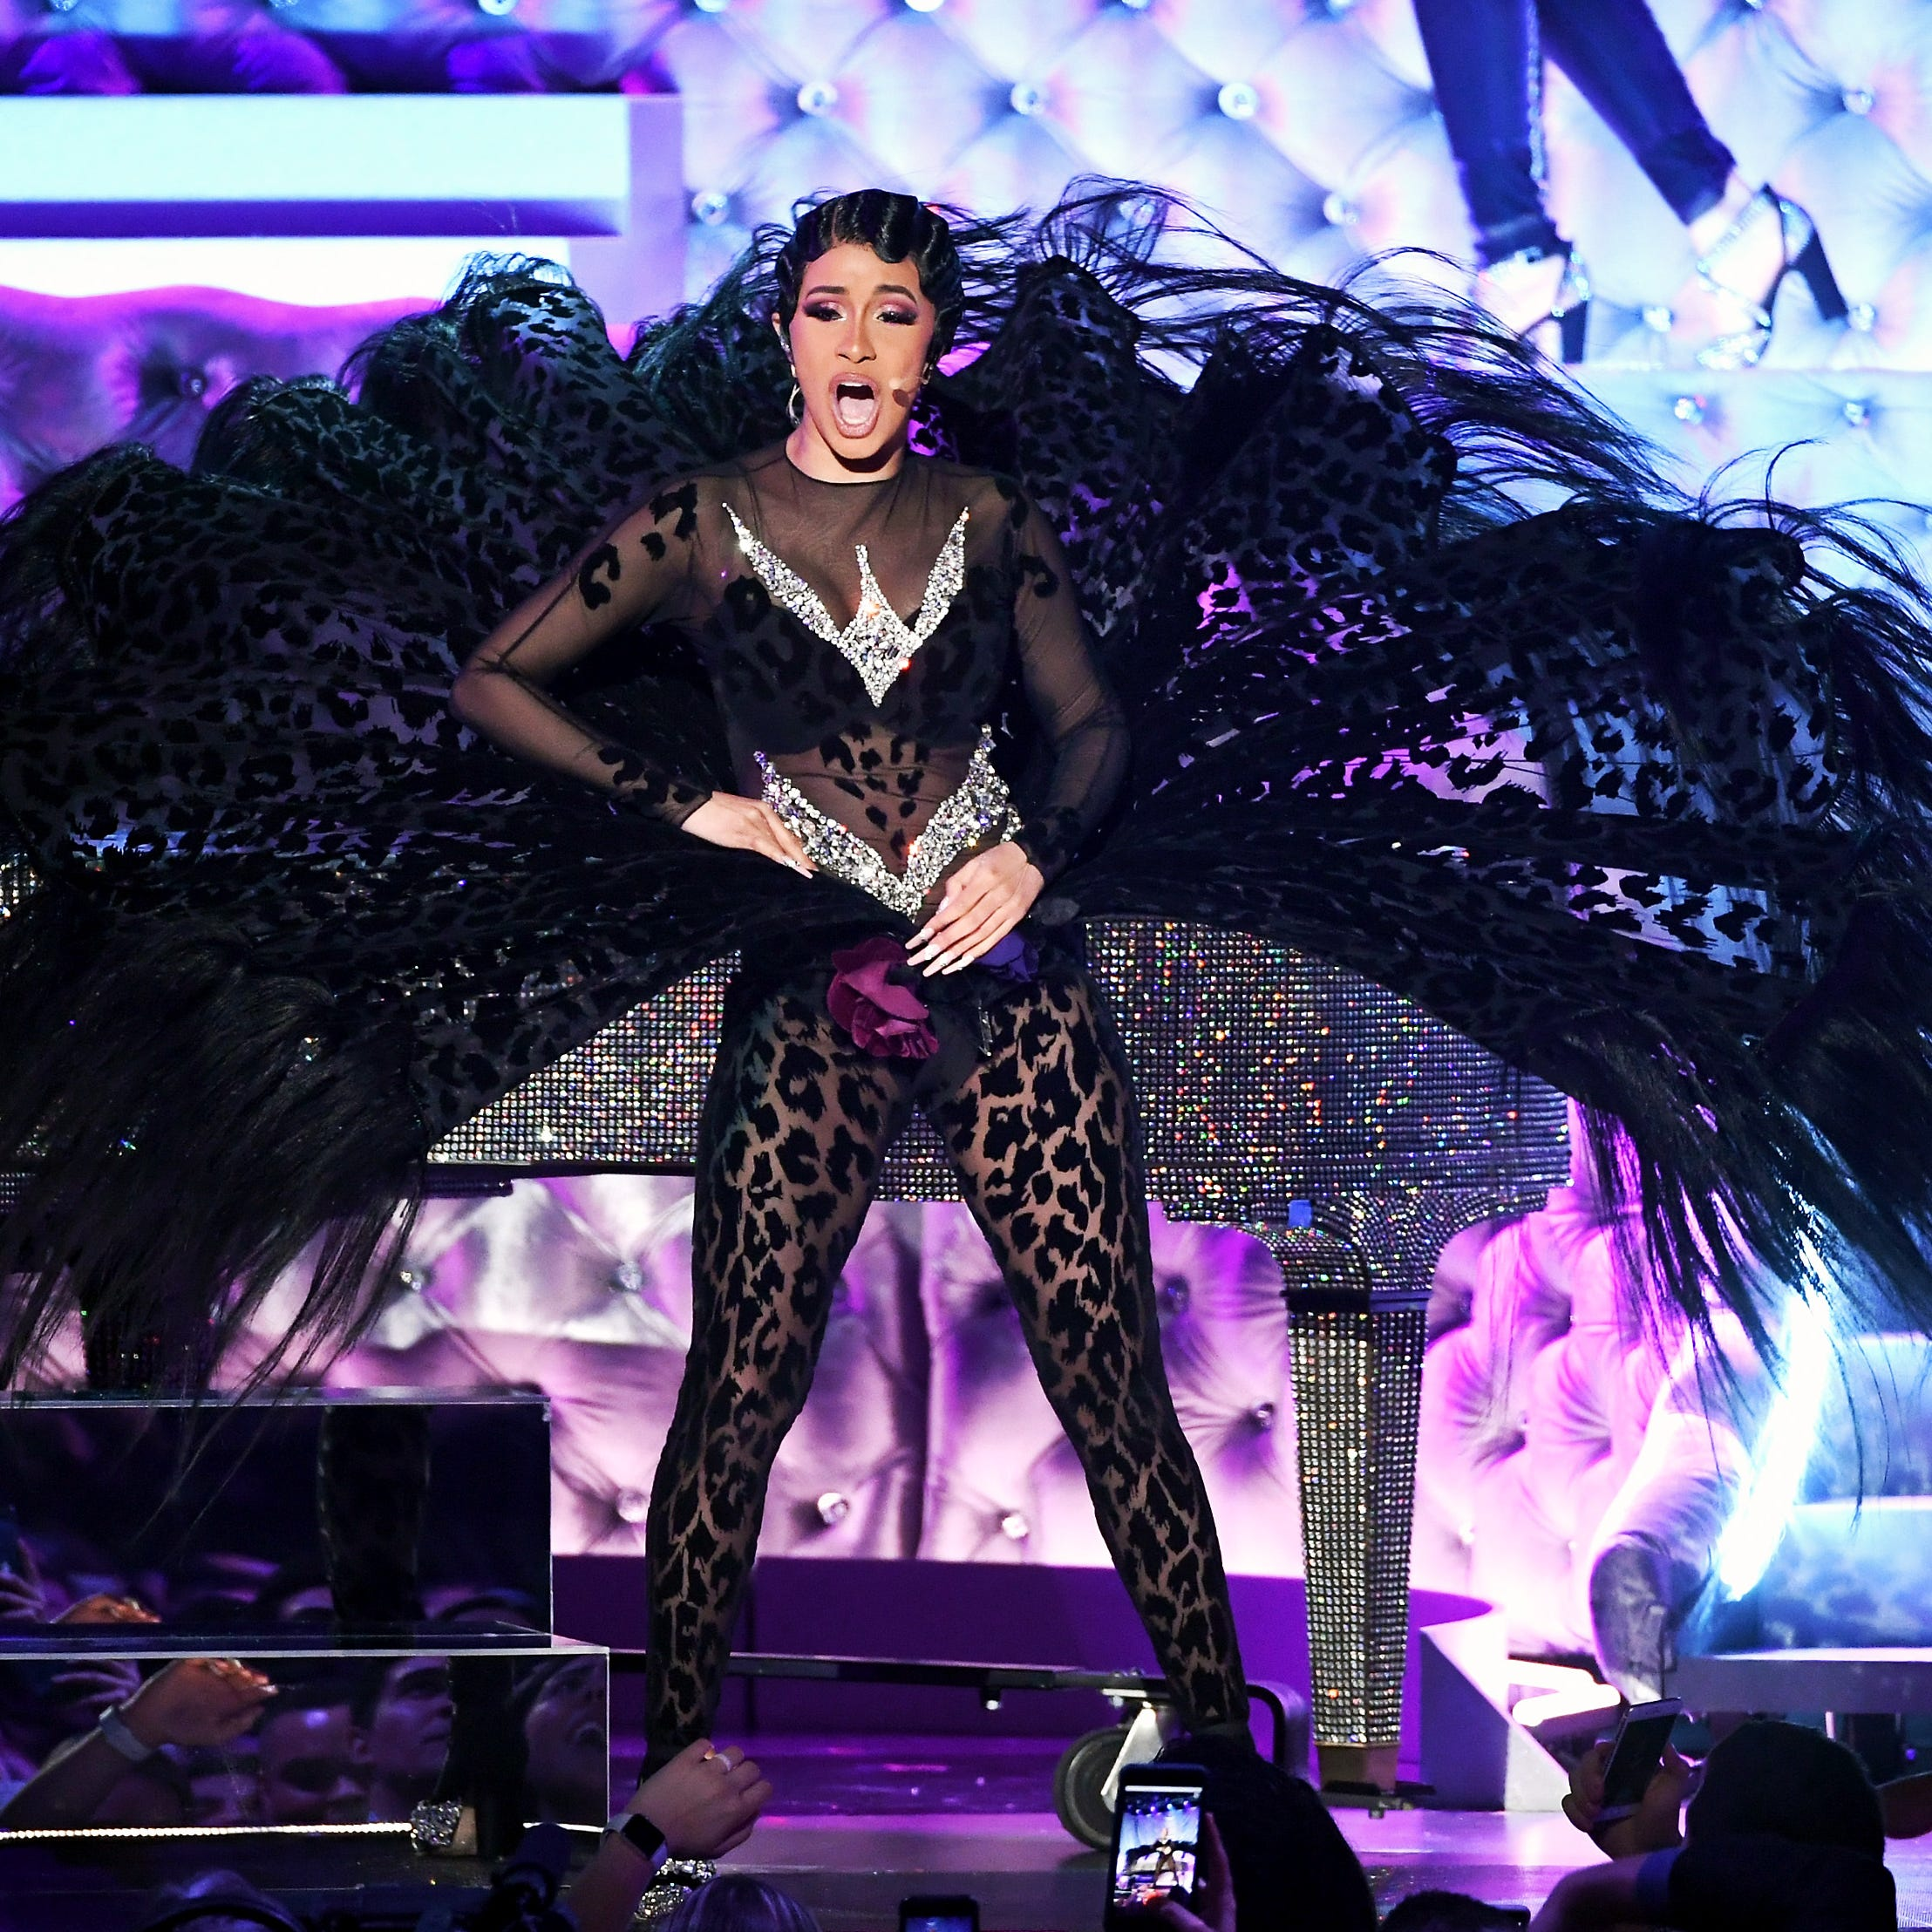 Lady Gaga, Cardi B, Aerosmith: The biggest stars in Las Vegas this summer